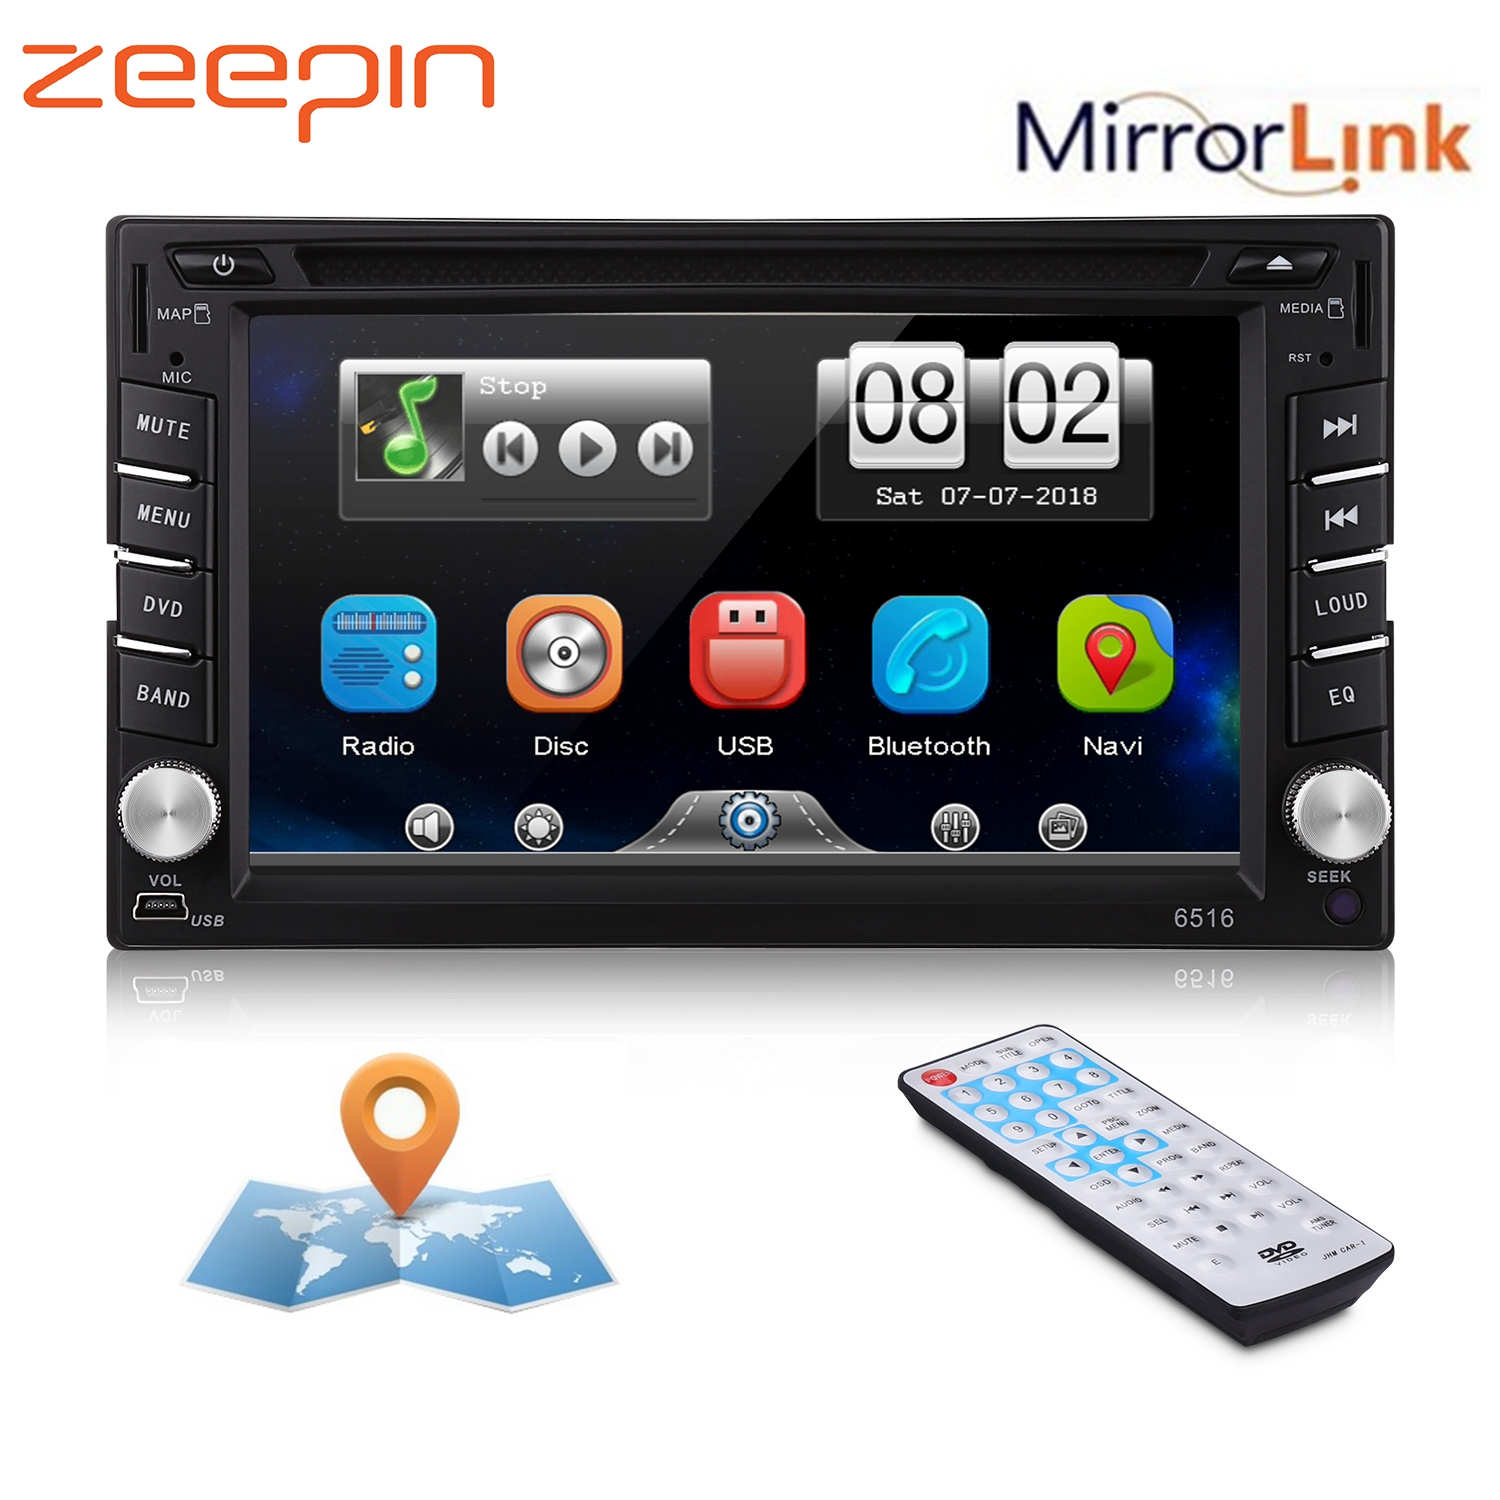 Double 2 DIN HD 6.2 Touch Screen Car DVD Player Bluetooth GPS Sat Nav Stereo Radio Wireless Remote AM/FM Radio Car DVD PlayerDouble 2 DIN HD 6.2 Touch Screen Car DVD Player Bluetooth GPS Sat Nav Stereo Radio Wireless Remote AM/FM Radio Car DVD Player